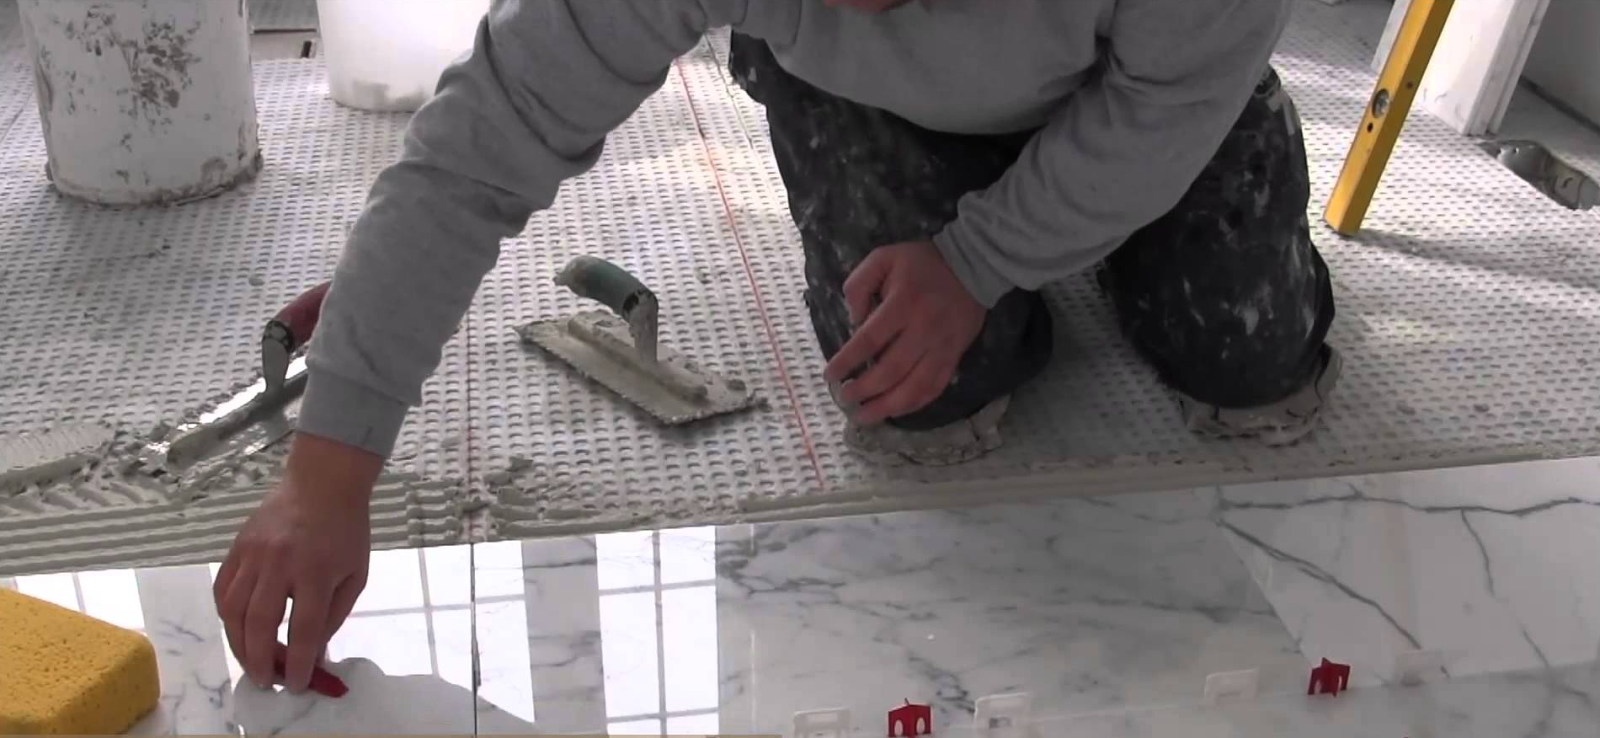 Hire One Of The Best Tiling Contractors For Tile